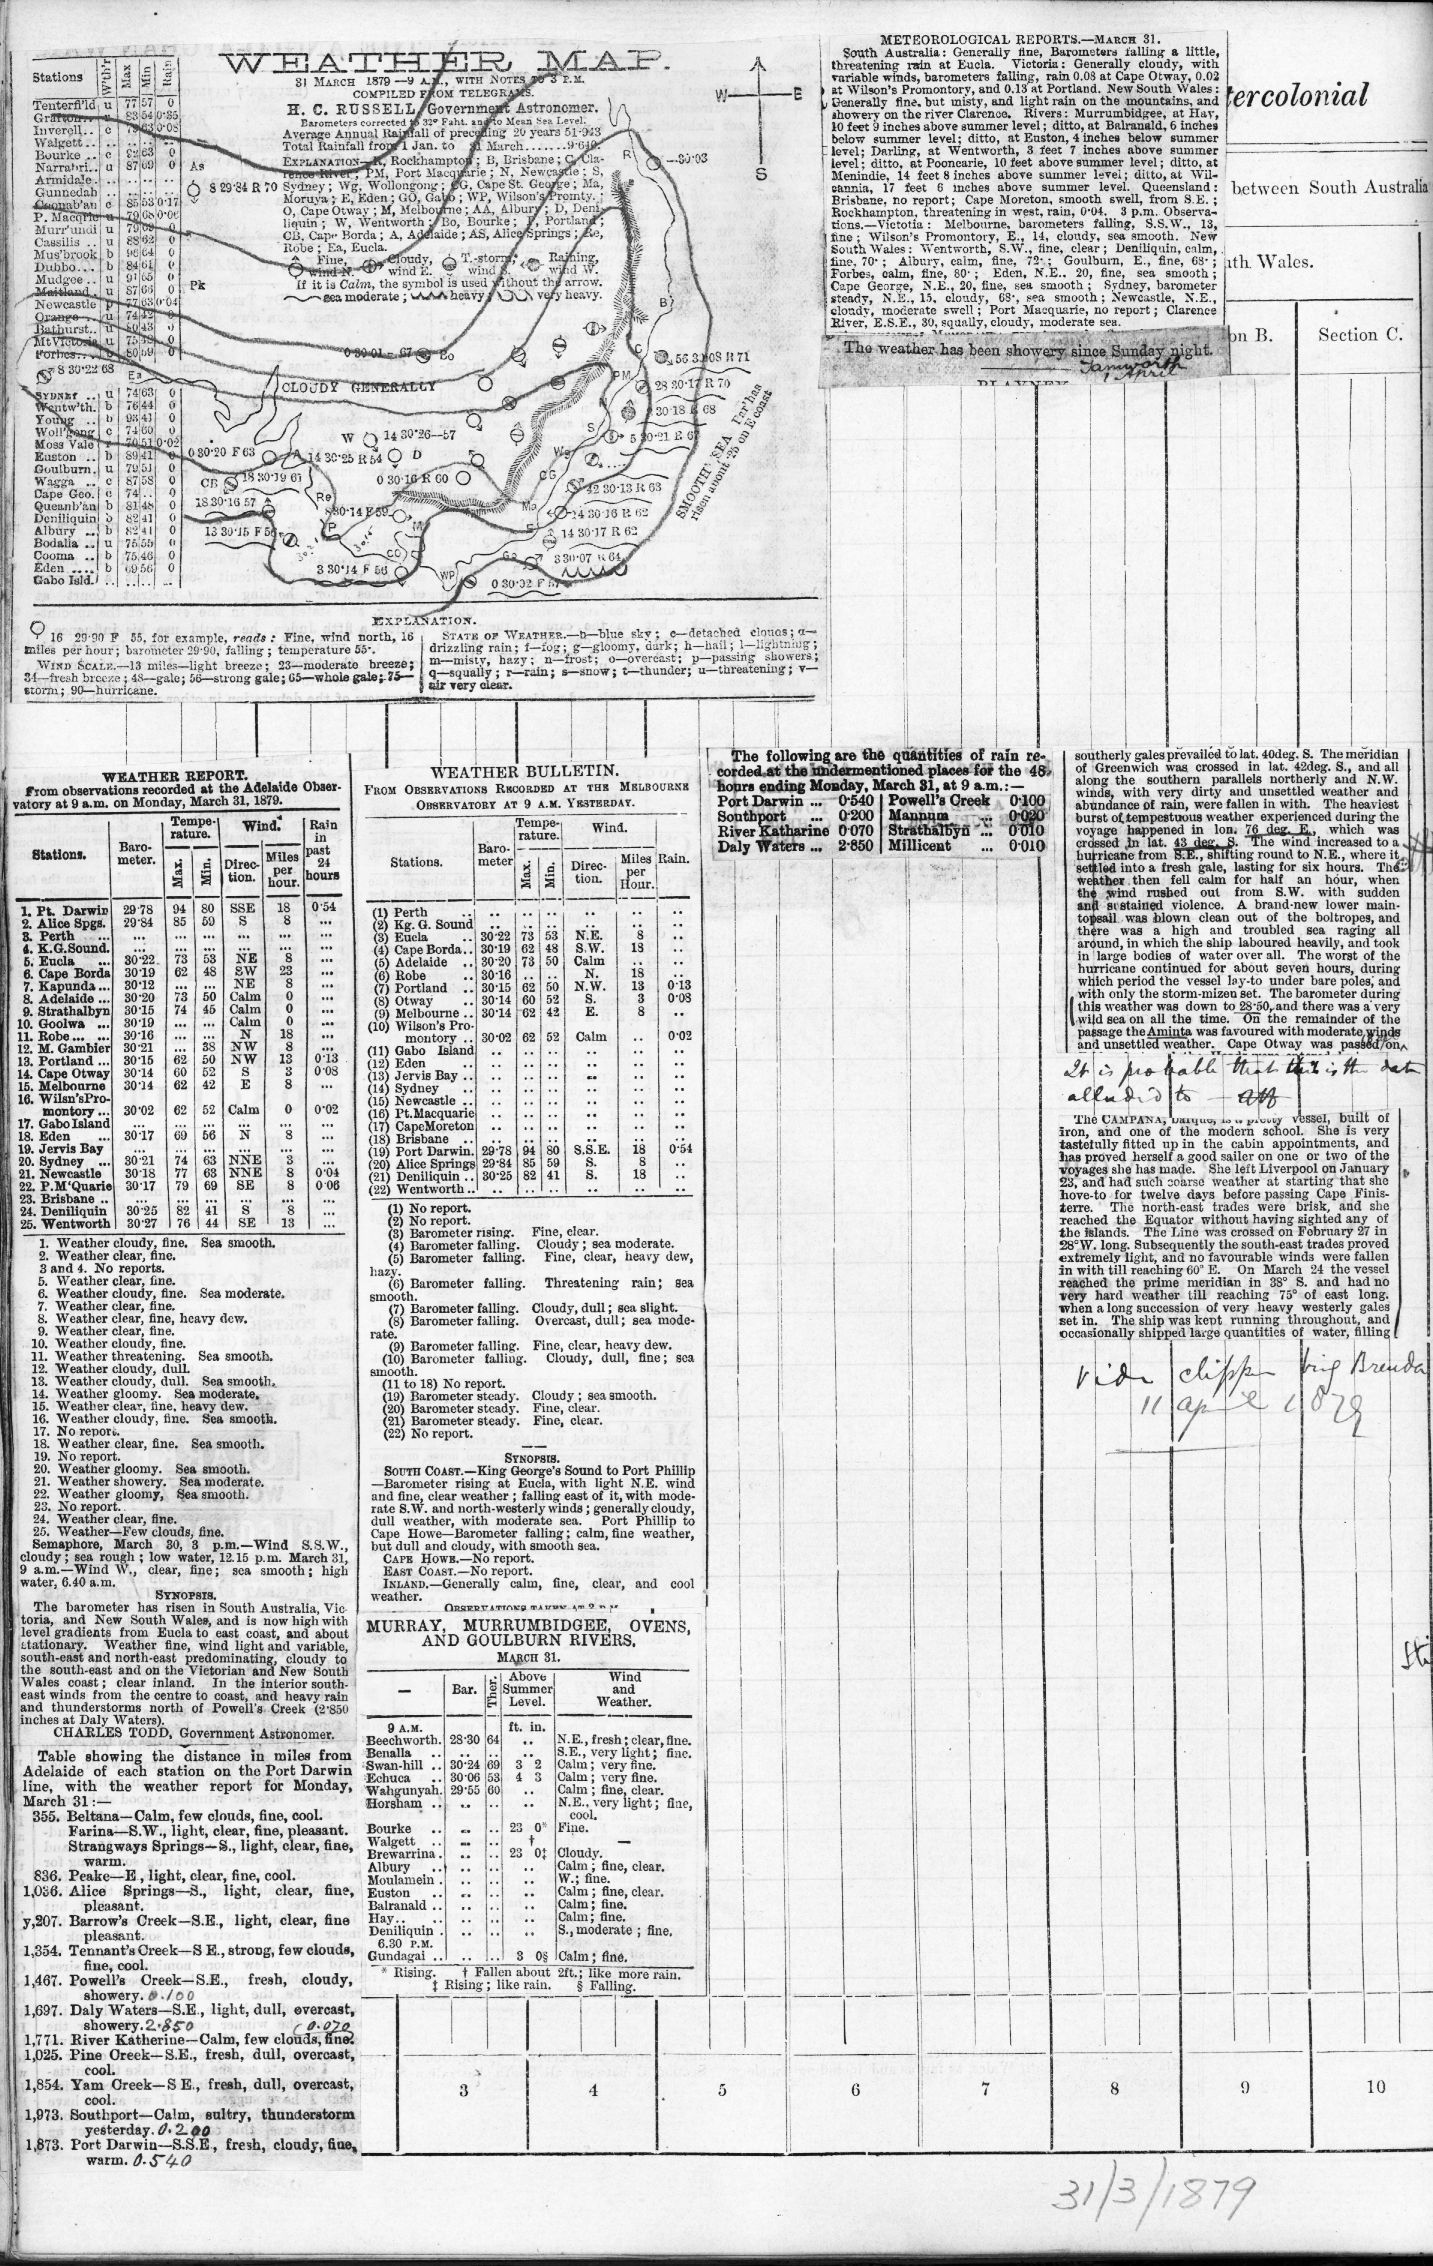 18790331t01 Weather map